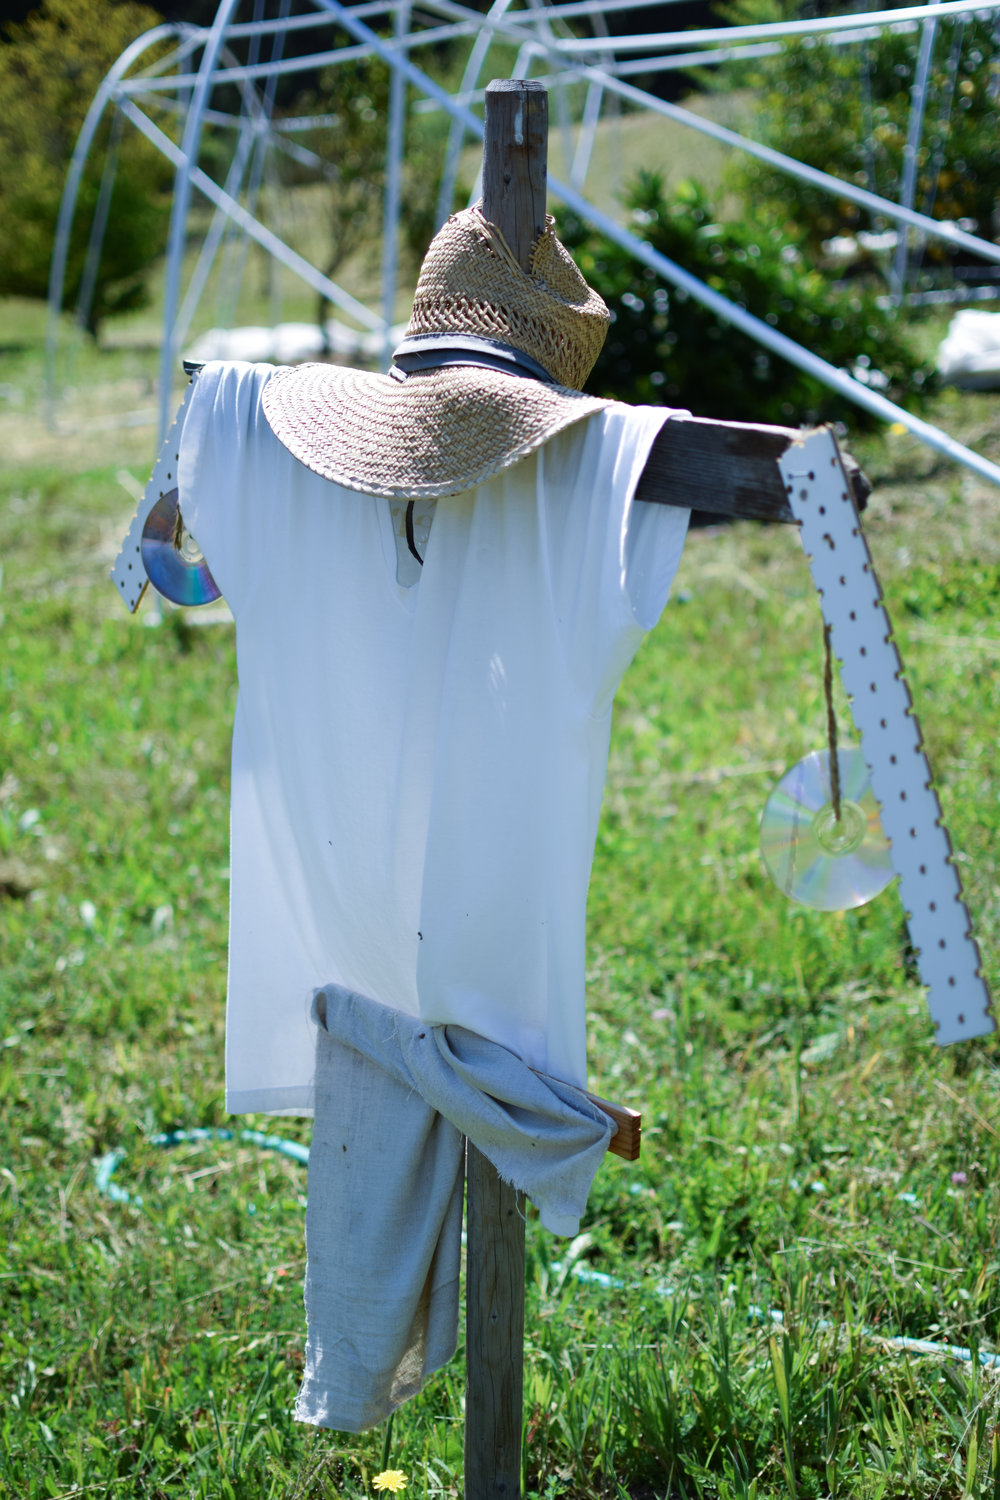 Our recycled scarecrow